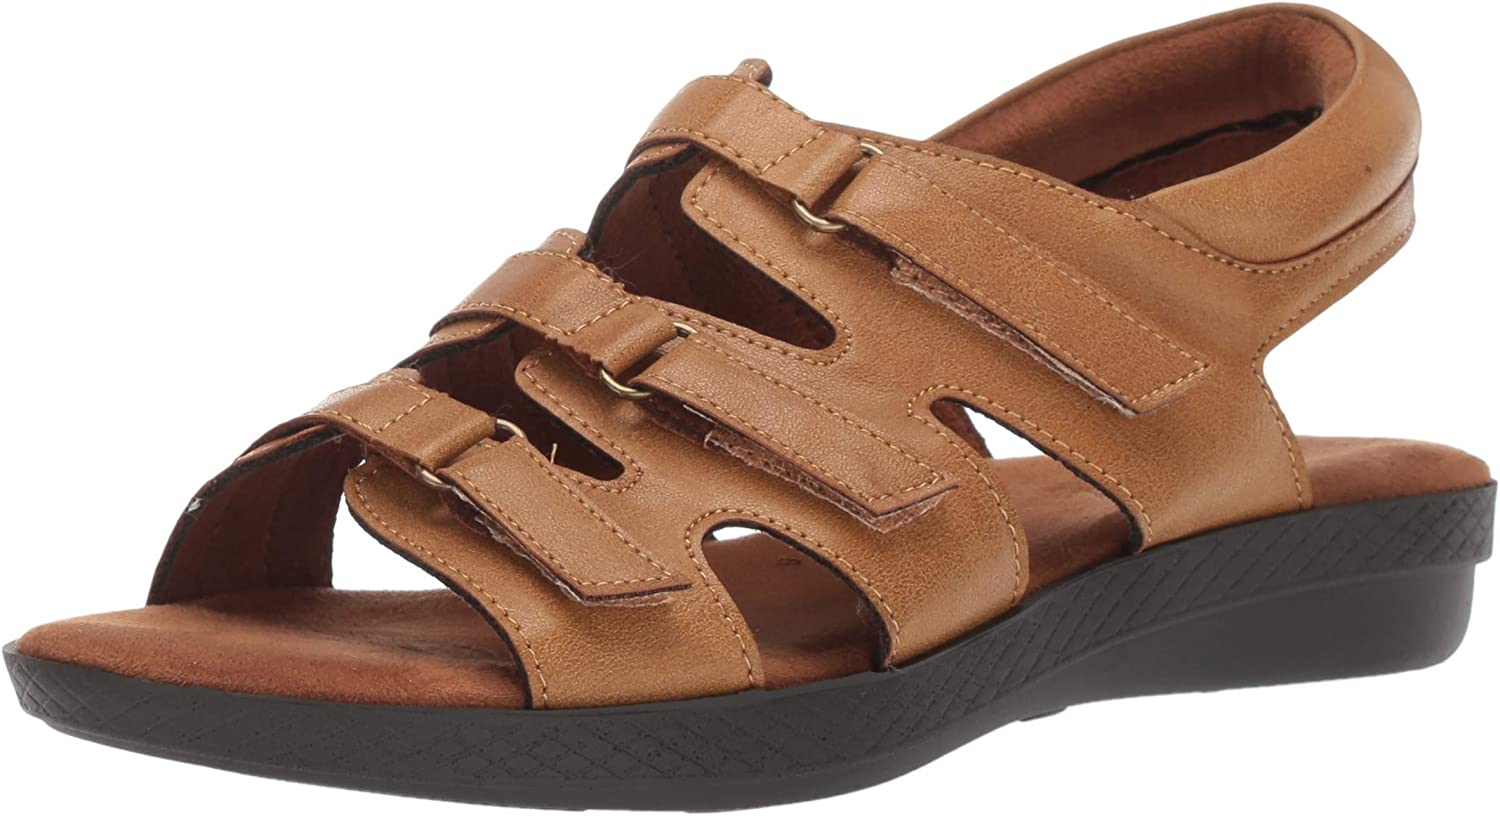 Easy Street Women's Rae Casual Sandal Loop and Hook Safety trust Closure with Sale special price